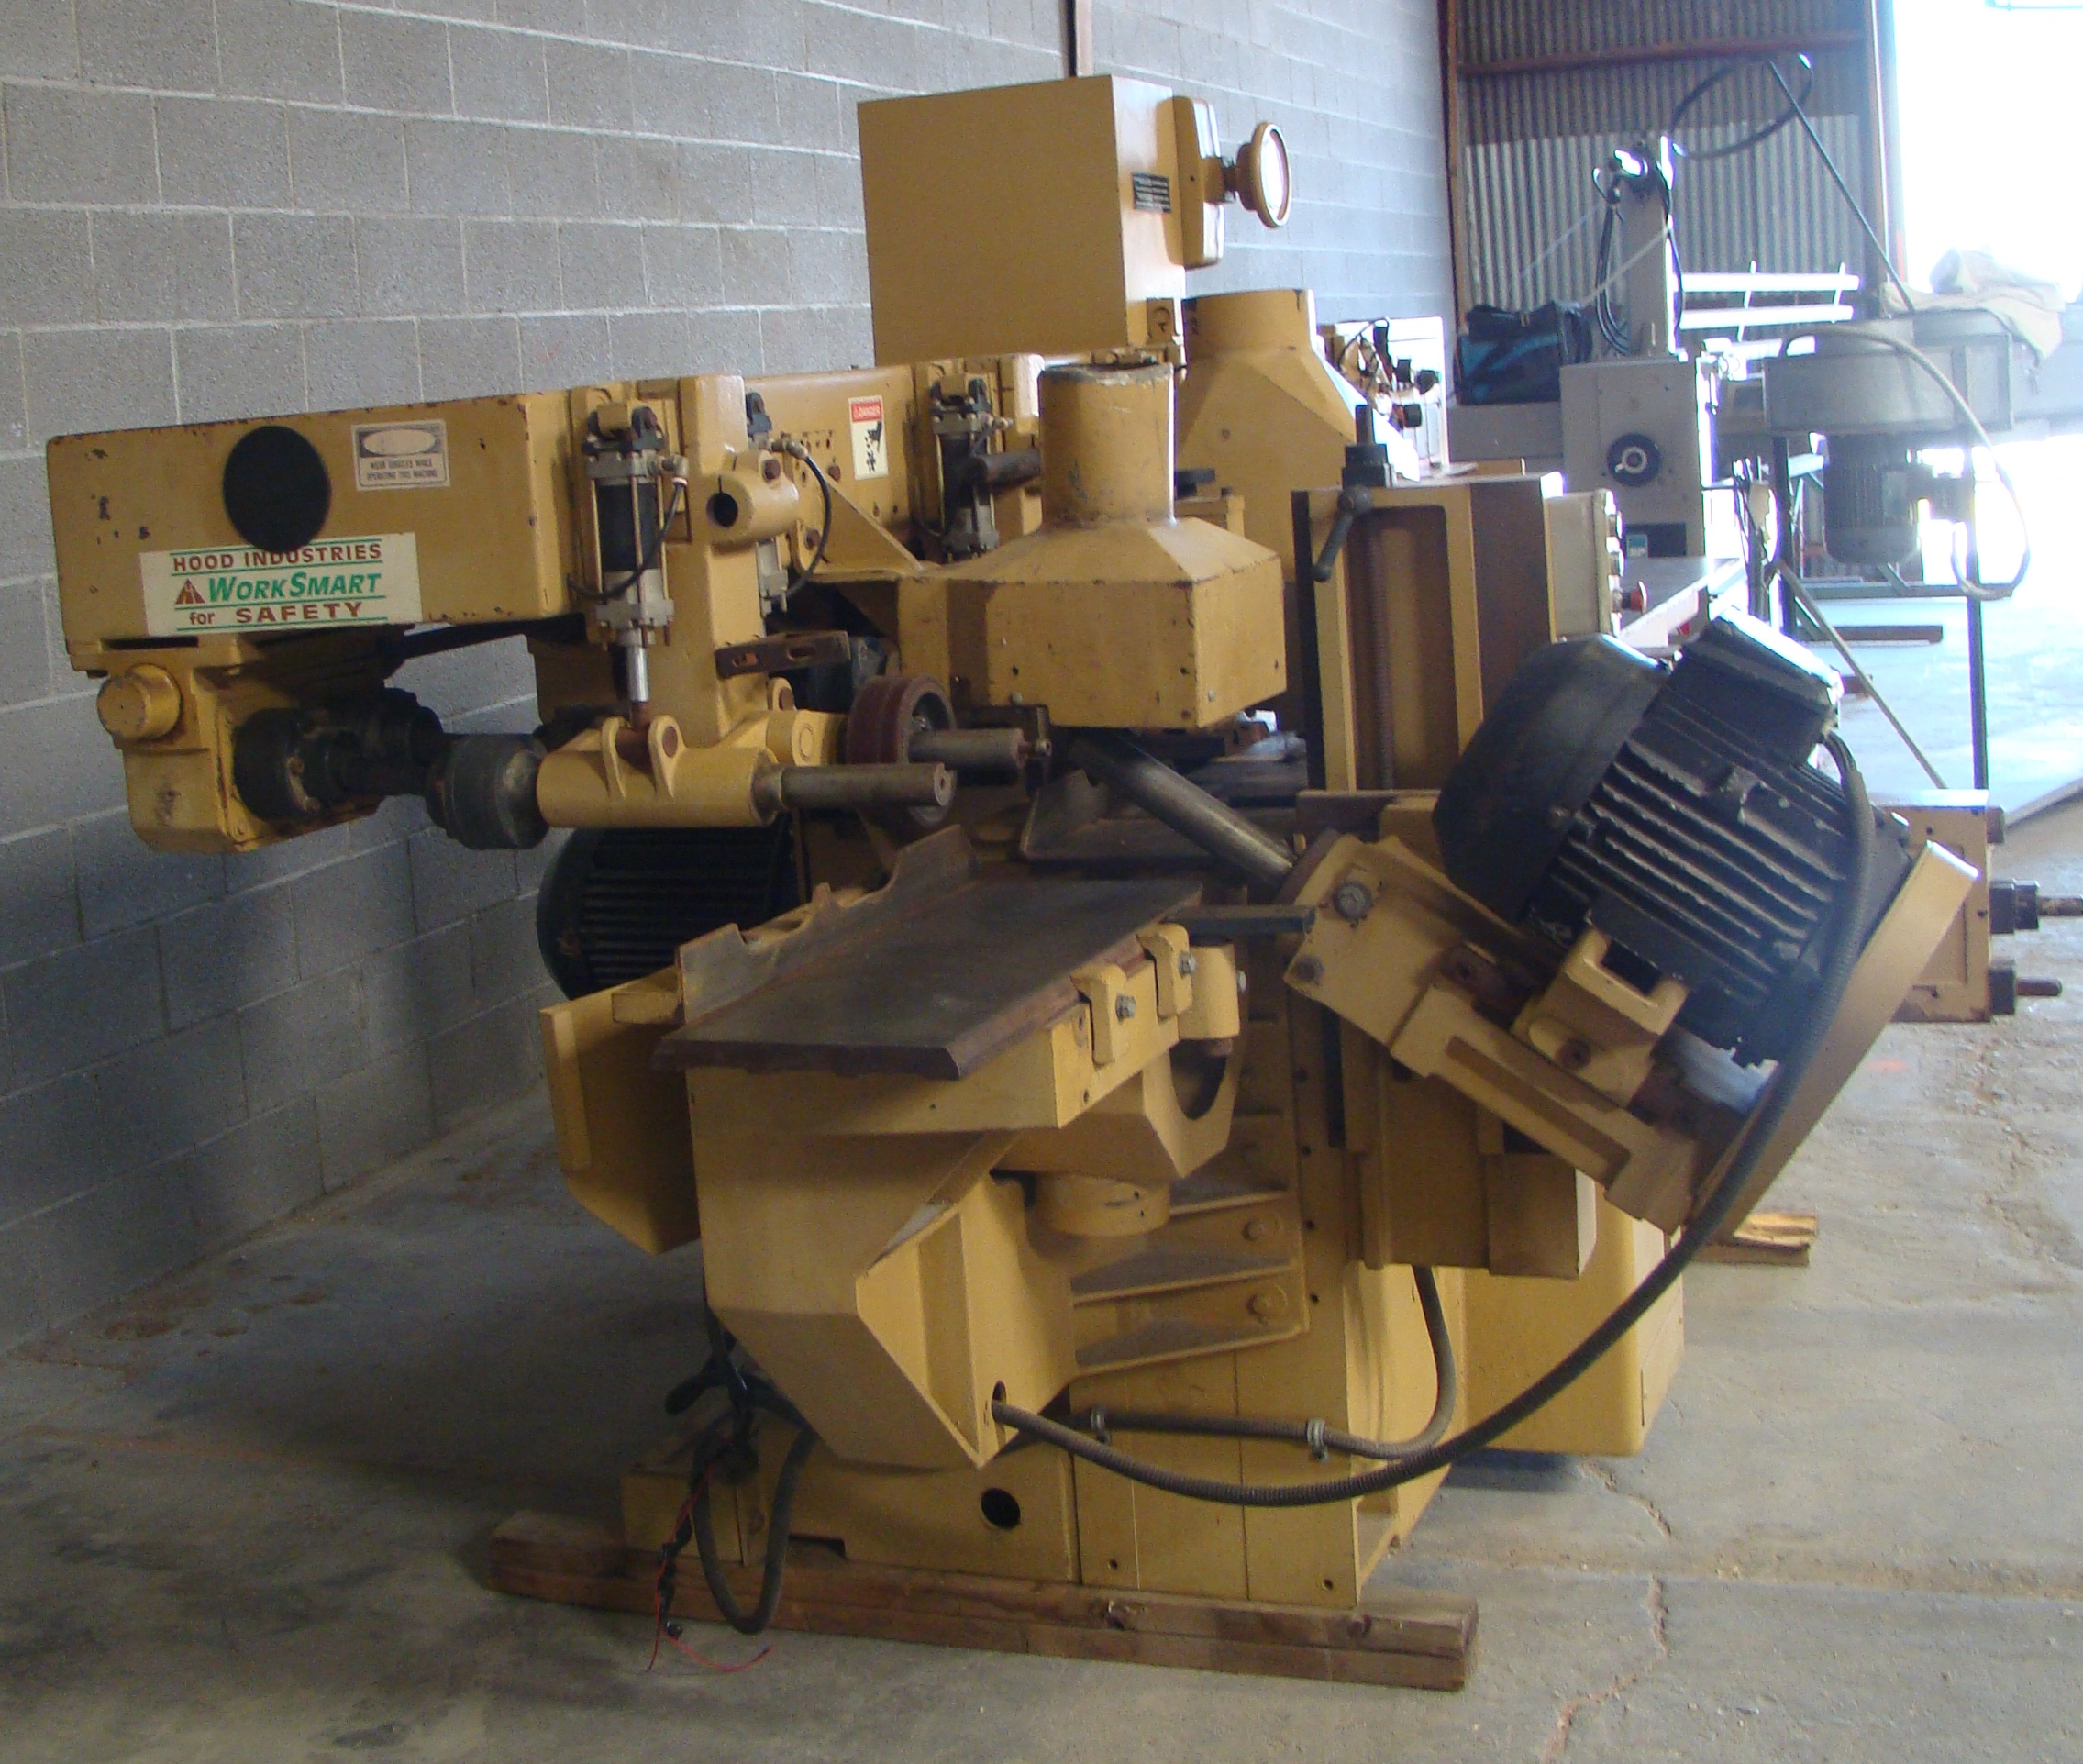 """SCMi 9"""" Wood Moulder, Model: P230 5 Head 6.6HP 220/440 Volts 3Phase - Image 11 of 14"""